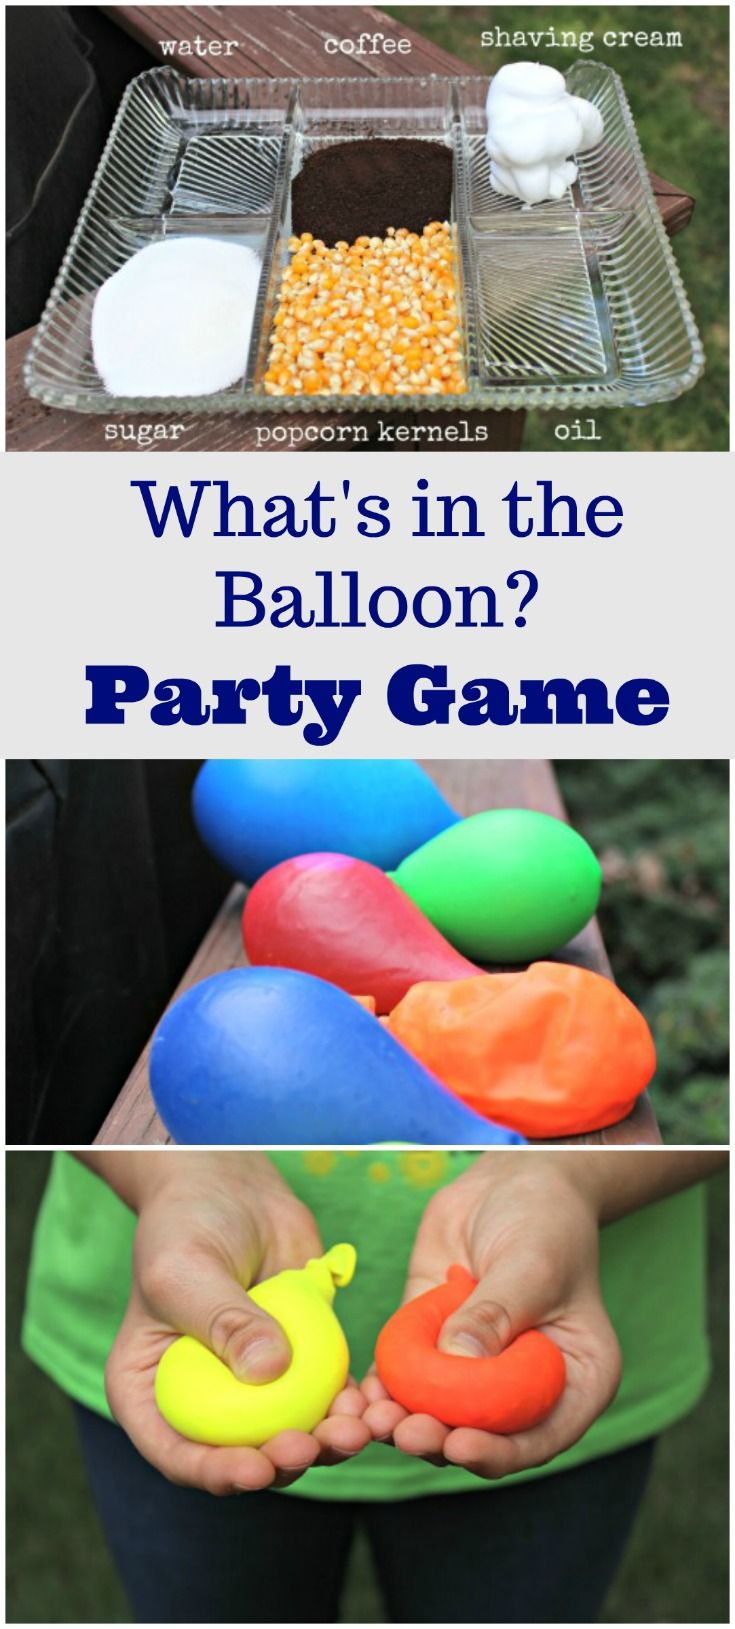 Party games for kids mystery sensory balloons science for Diy party games for adults